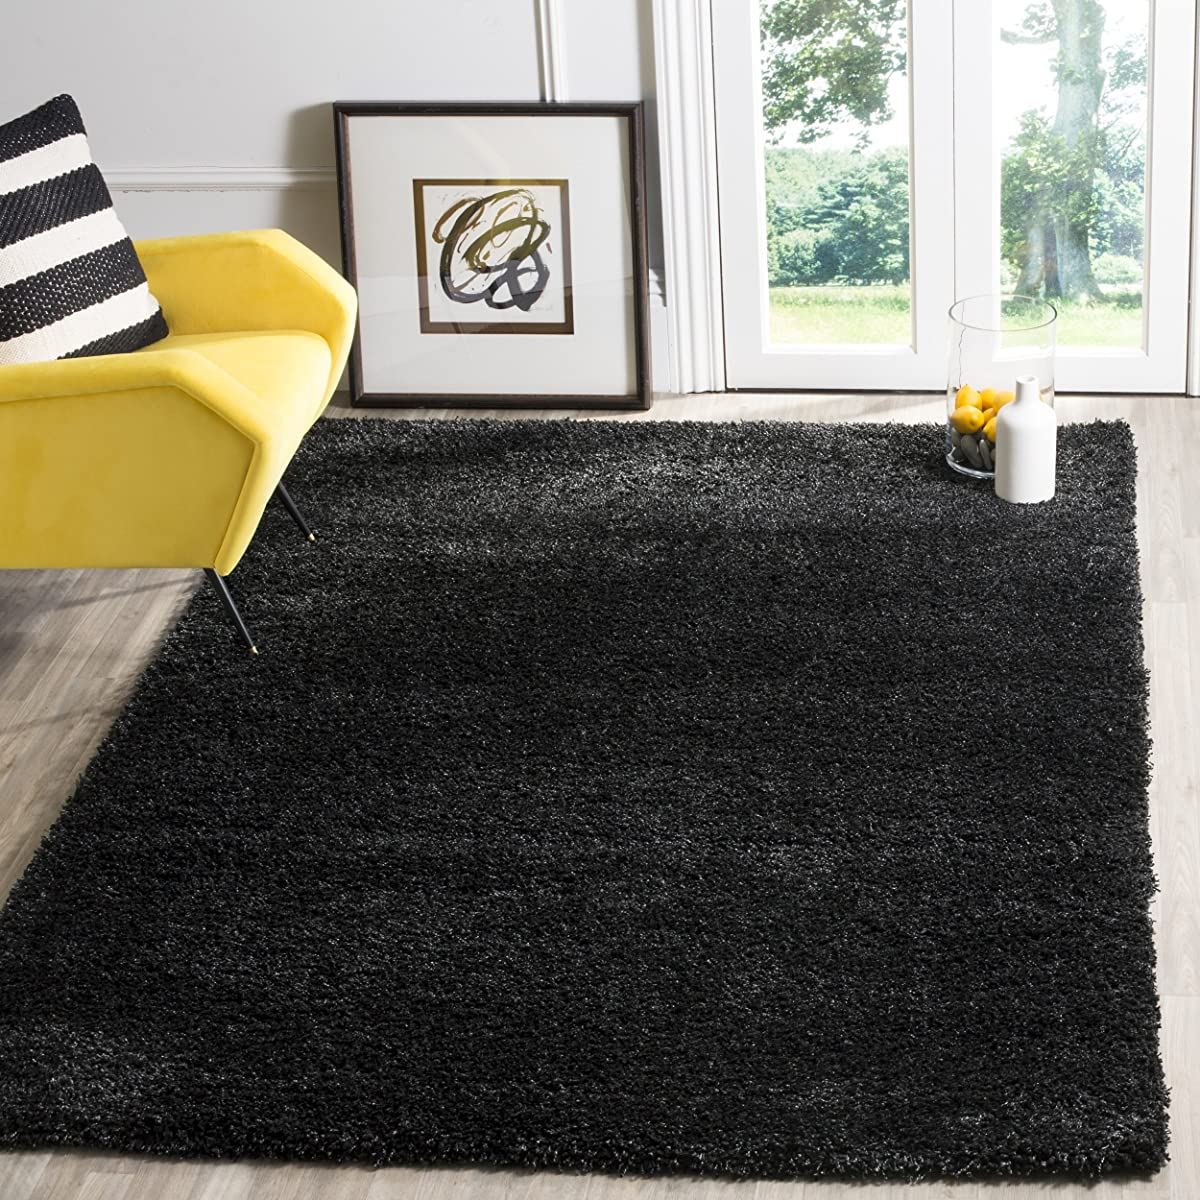 Safavieh California Premium Shag Collection SG151-9090 Black Area Rug (4 x 6)